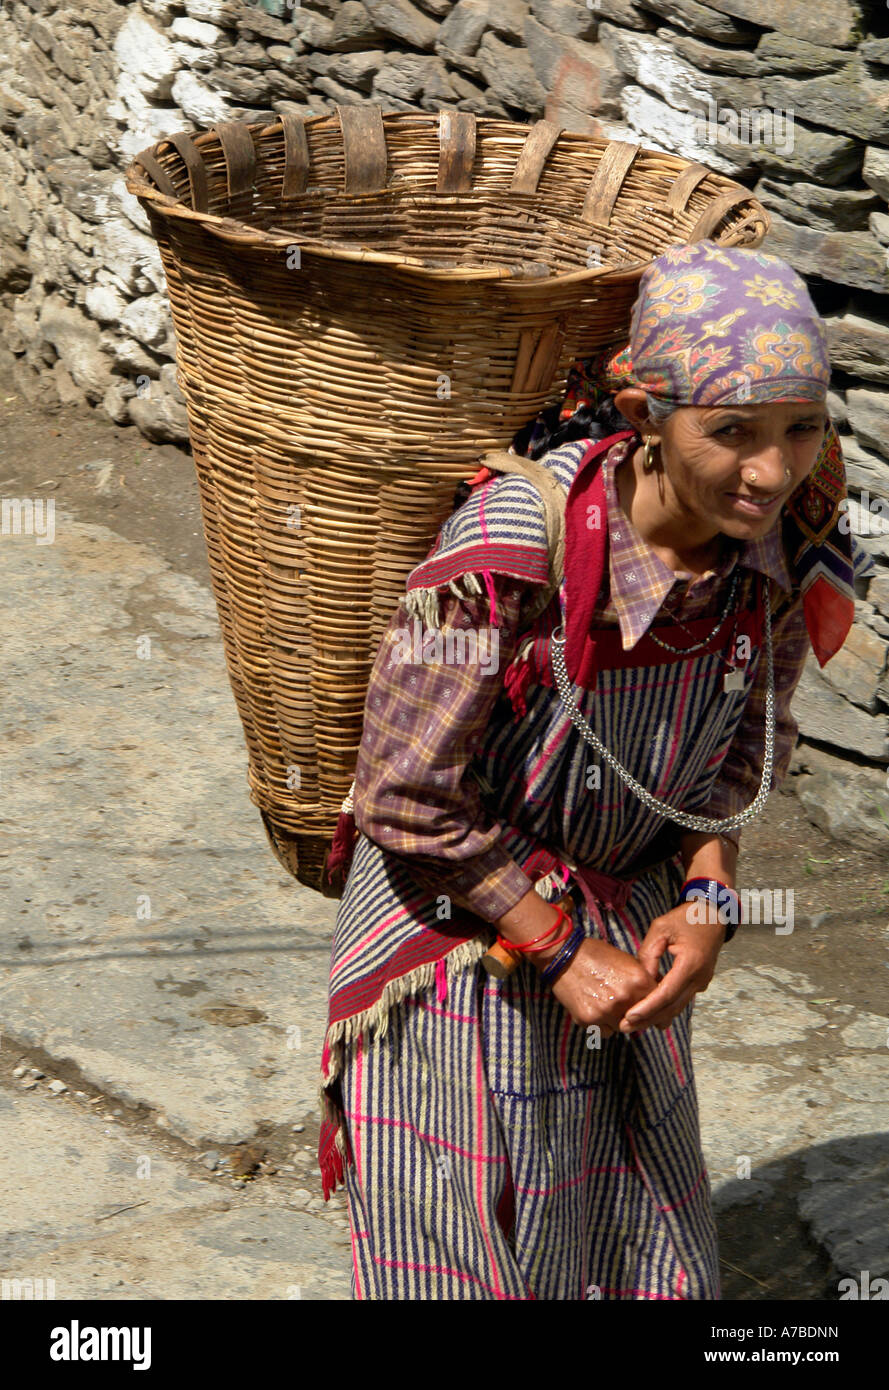 old woman - manali - Stock Image